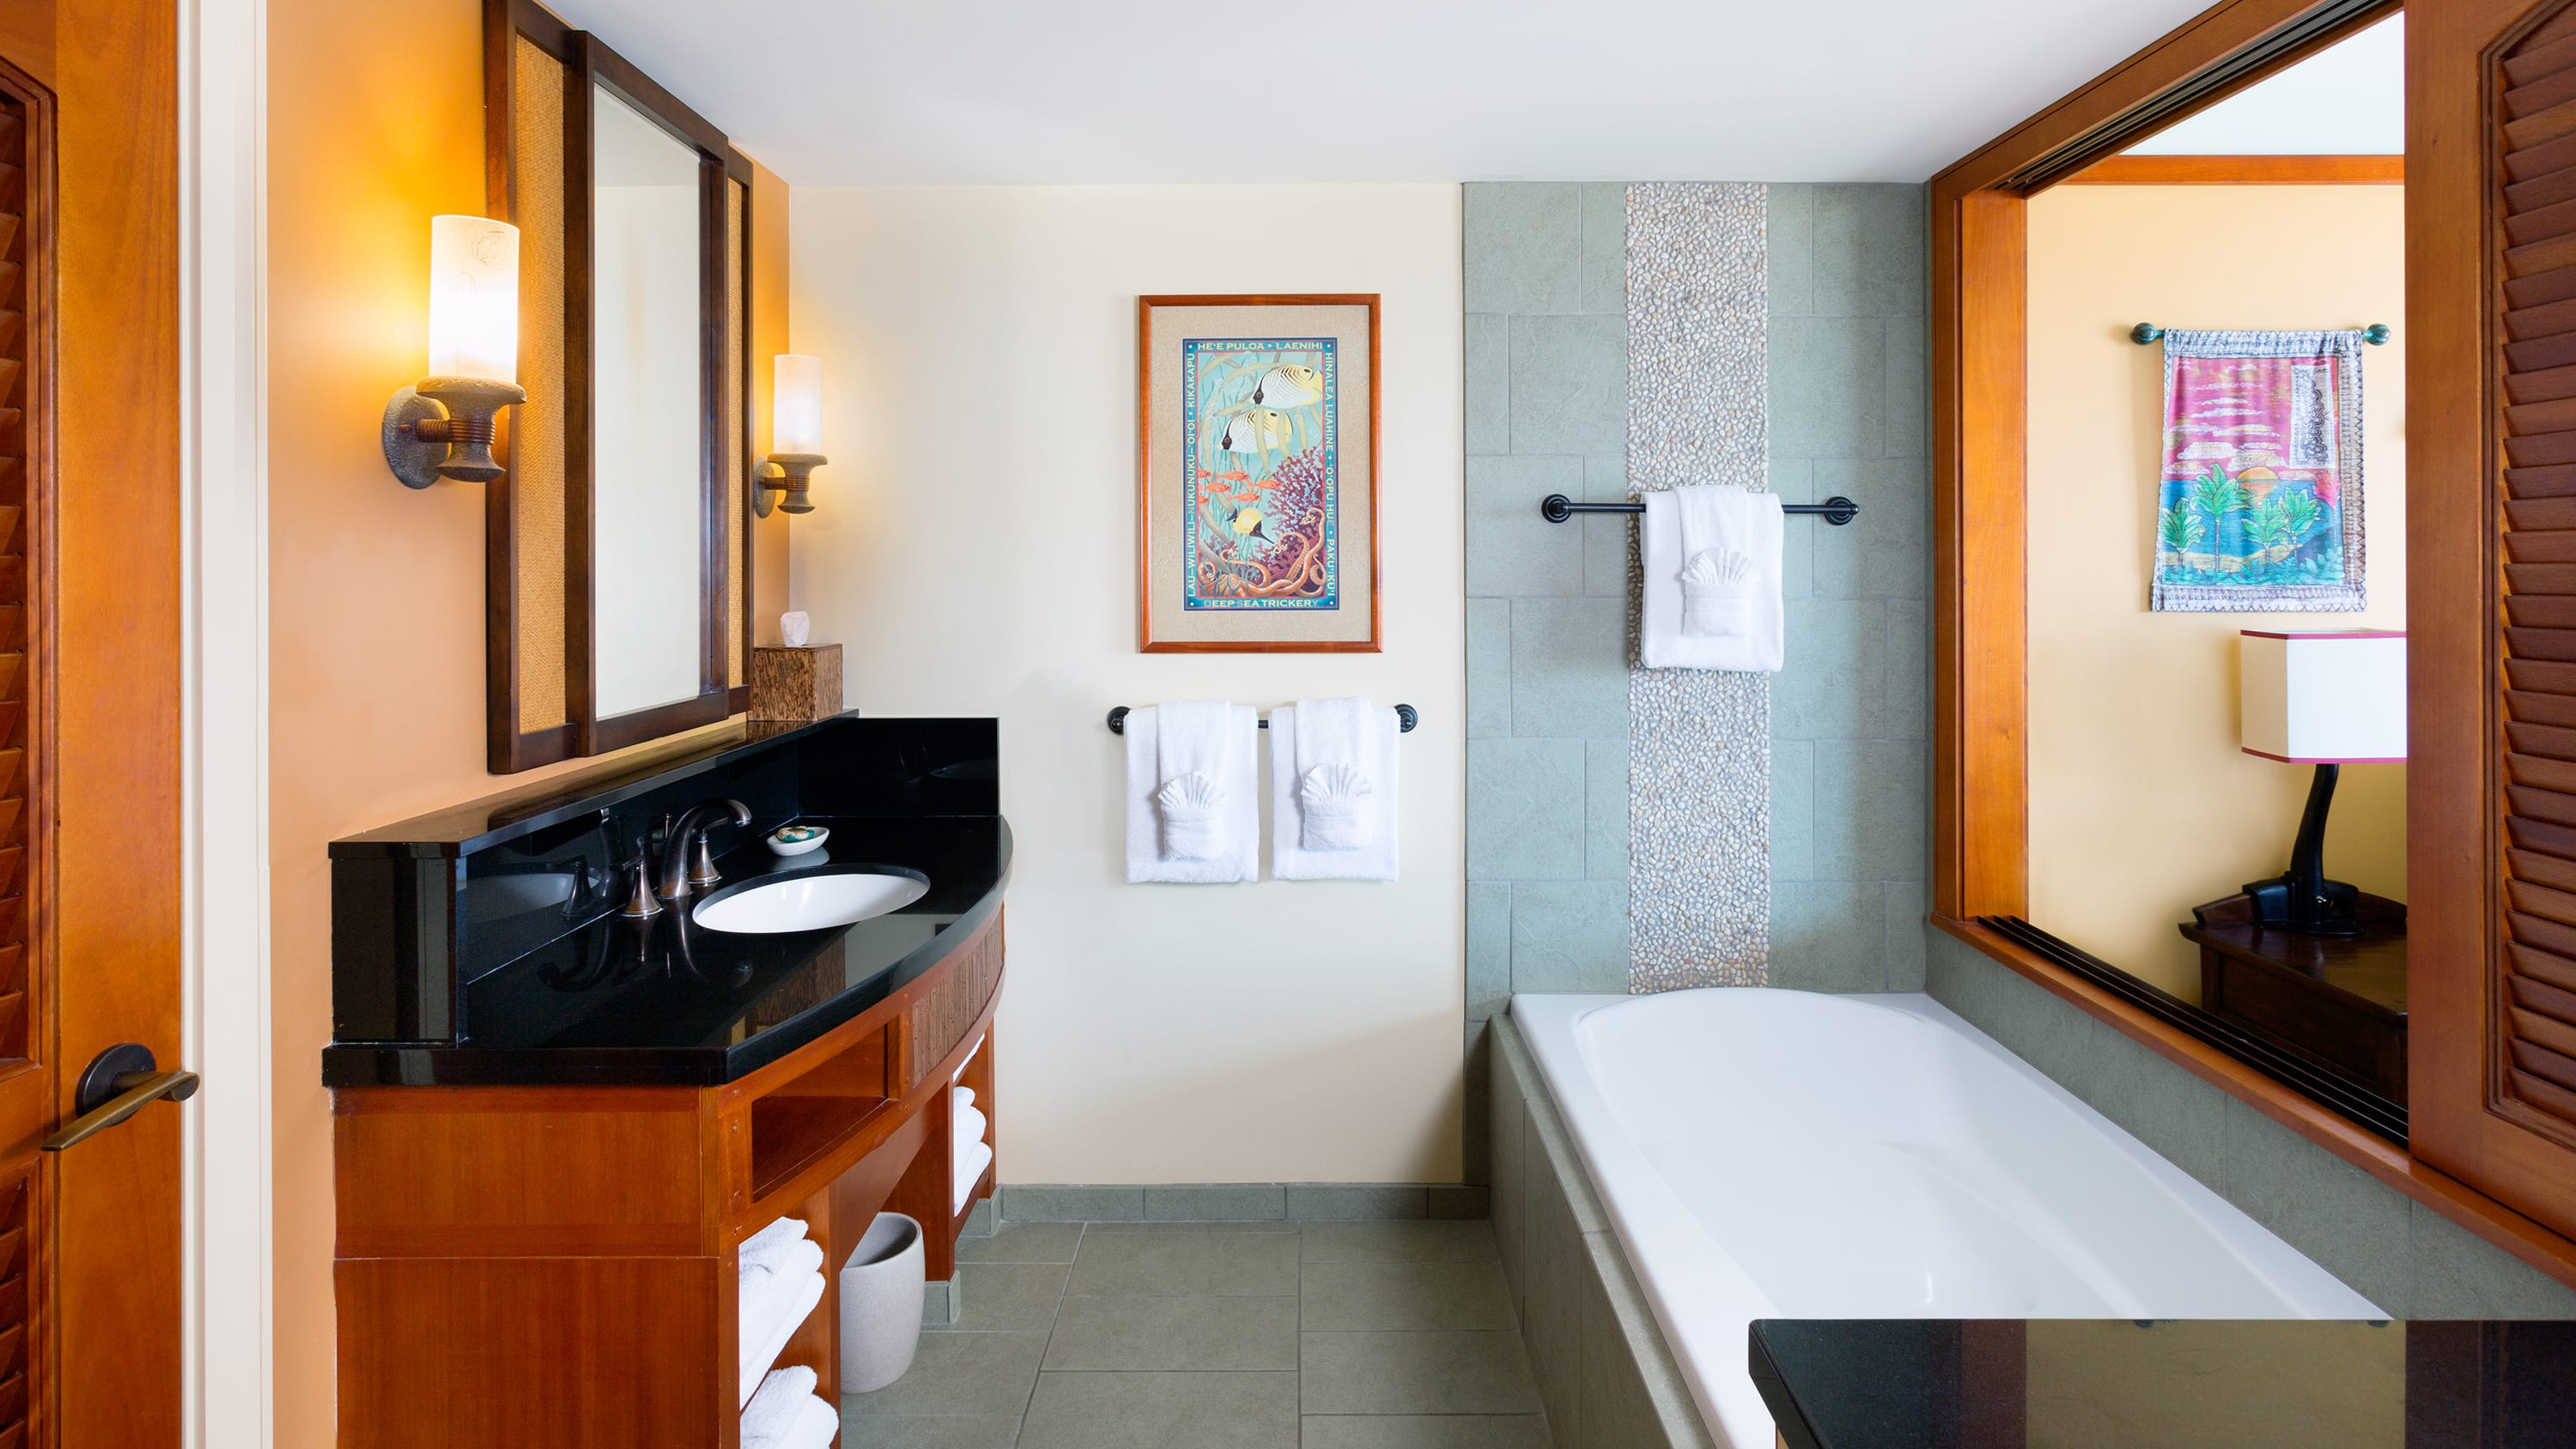 A bathroom with a sink, a mirror, towels, a painting and a bathtub near a room divider and a lamp